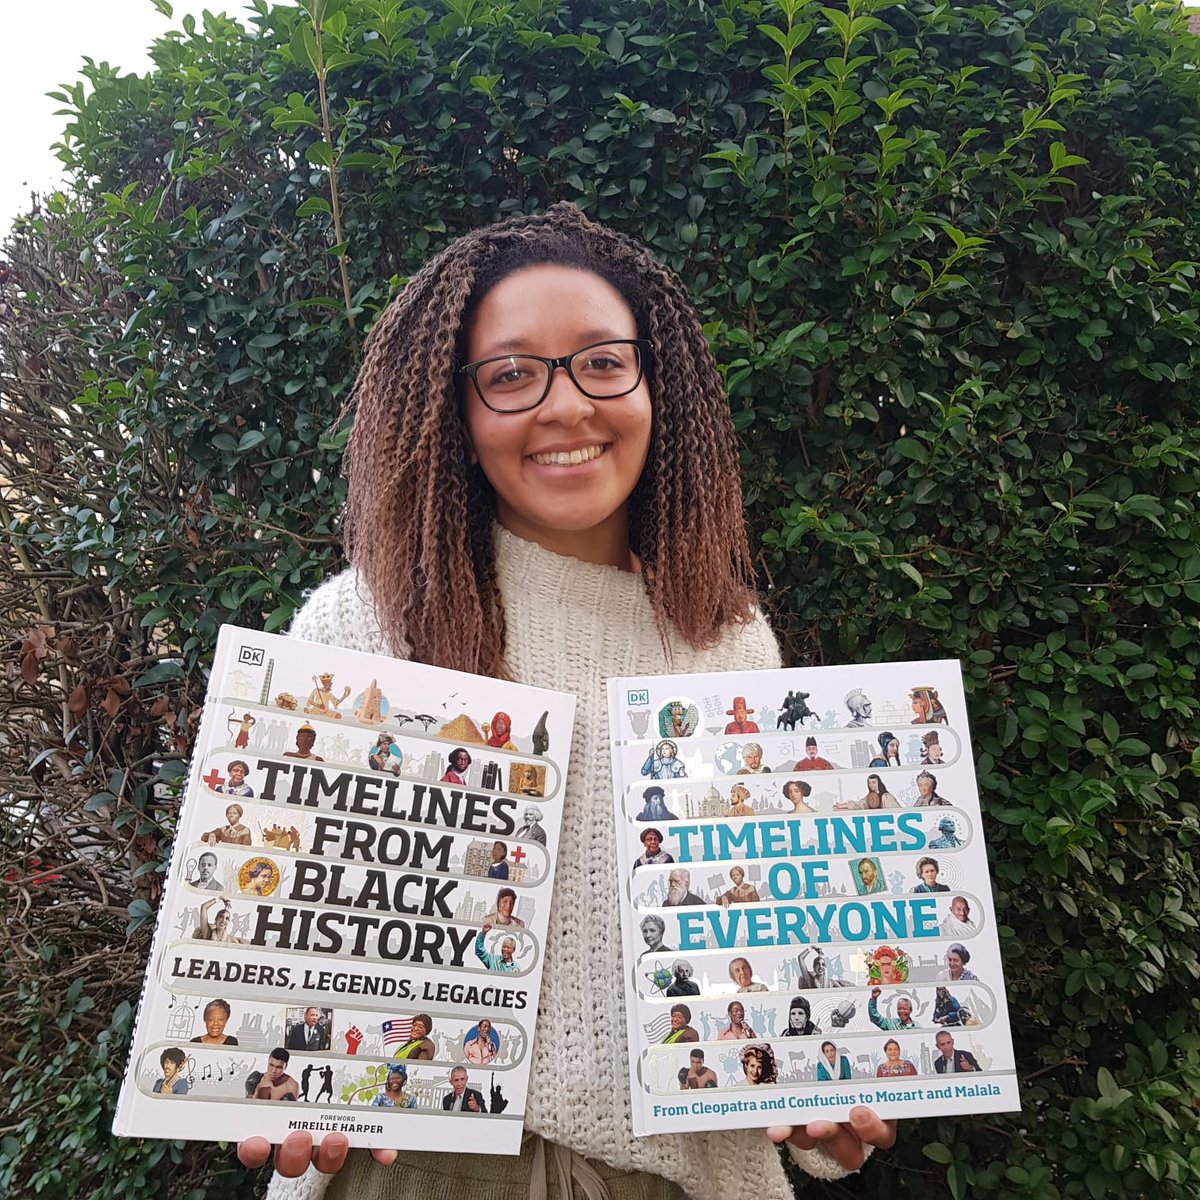 Book babies are out! V. proud to share that I worked on Timelines of Everyone and Timelines of Black History and both are out today. Thanks to the @dkbooks crew for their brilliant work on this. Lil' thread to follow below.